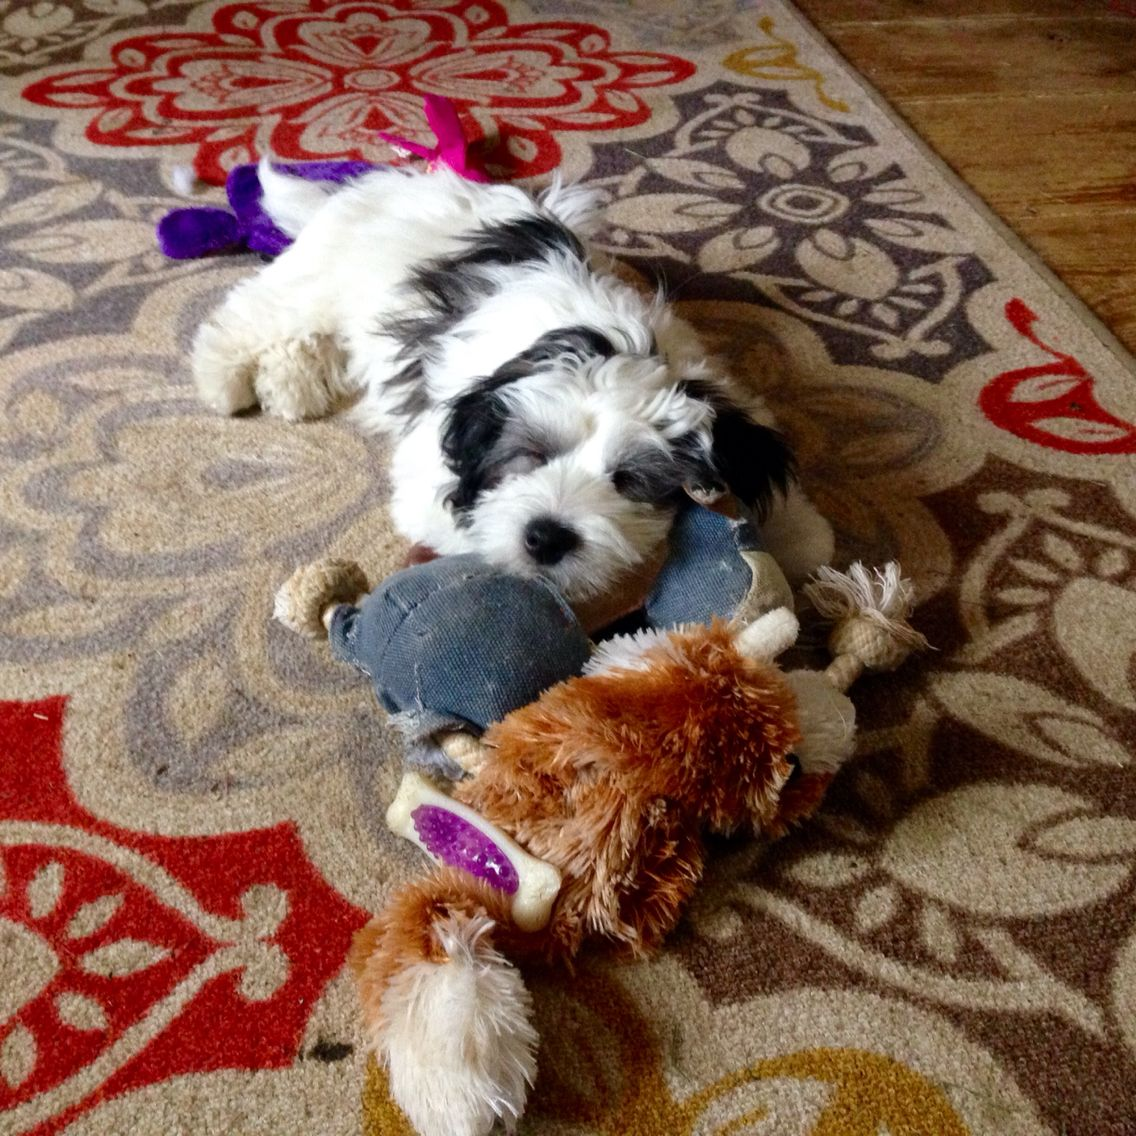 4 Months Old! Sleeping With The Toys!